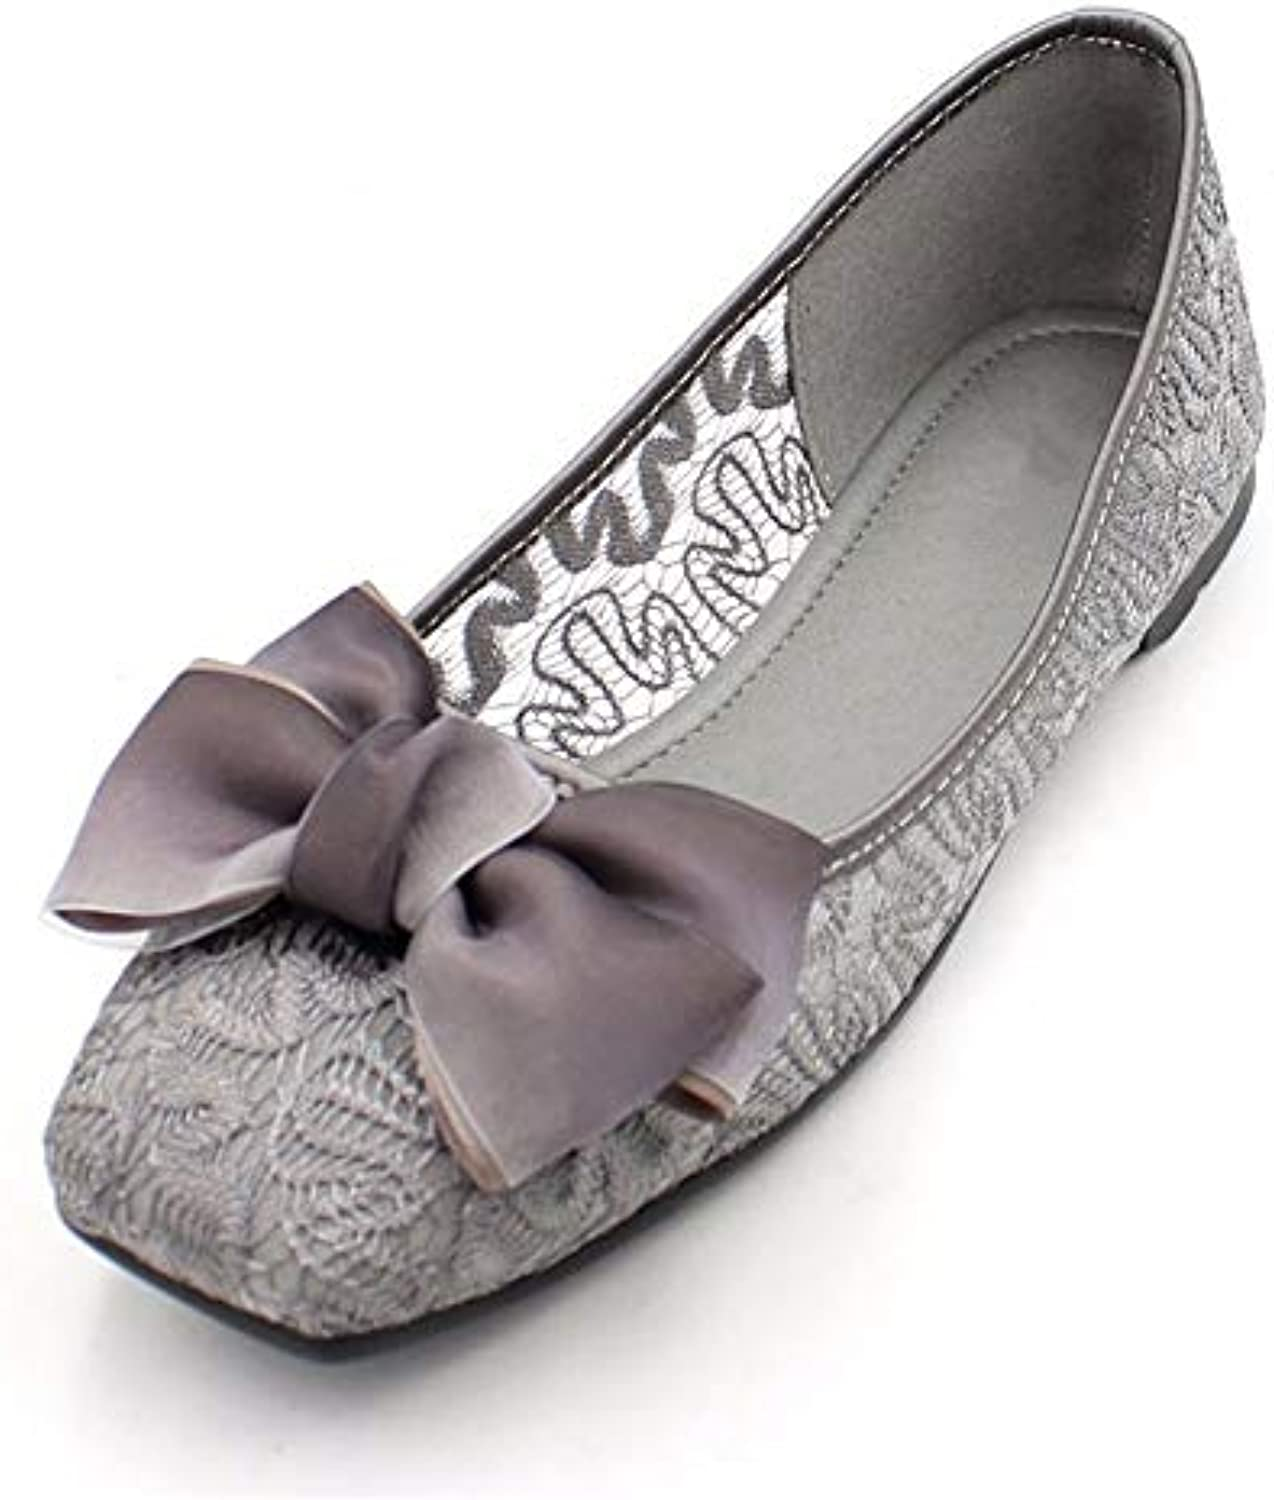 60eee6dbef6a FLYRCX Fashion sweet bow bow bow openwork gray flat shoes summer sandals  single shoes work shoes comfortable non-slip... B07GB4SDJY Parent 232187